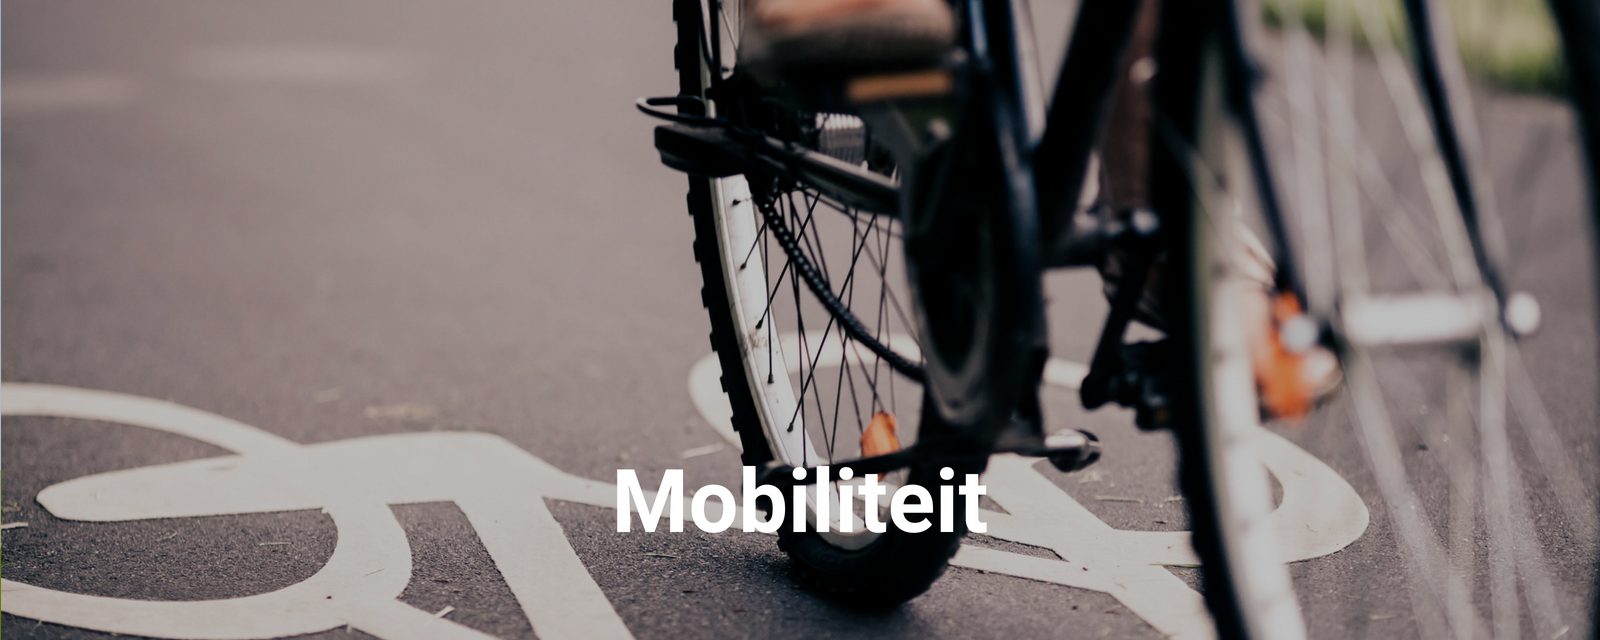 mobiliteit.png